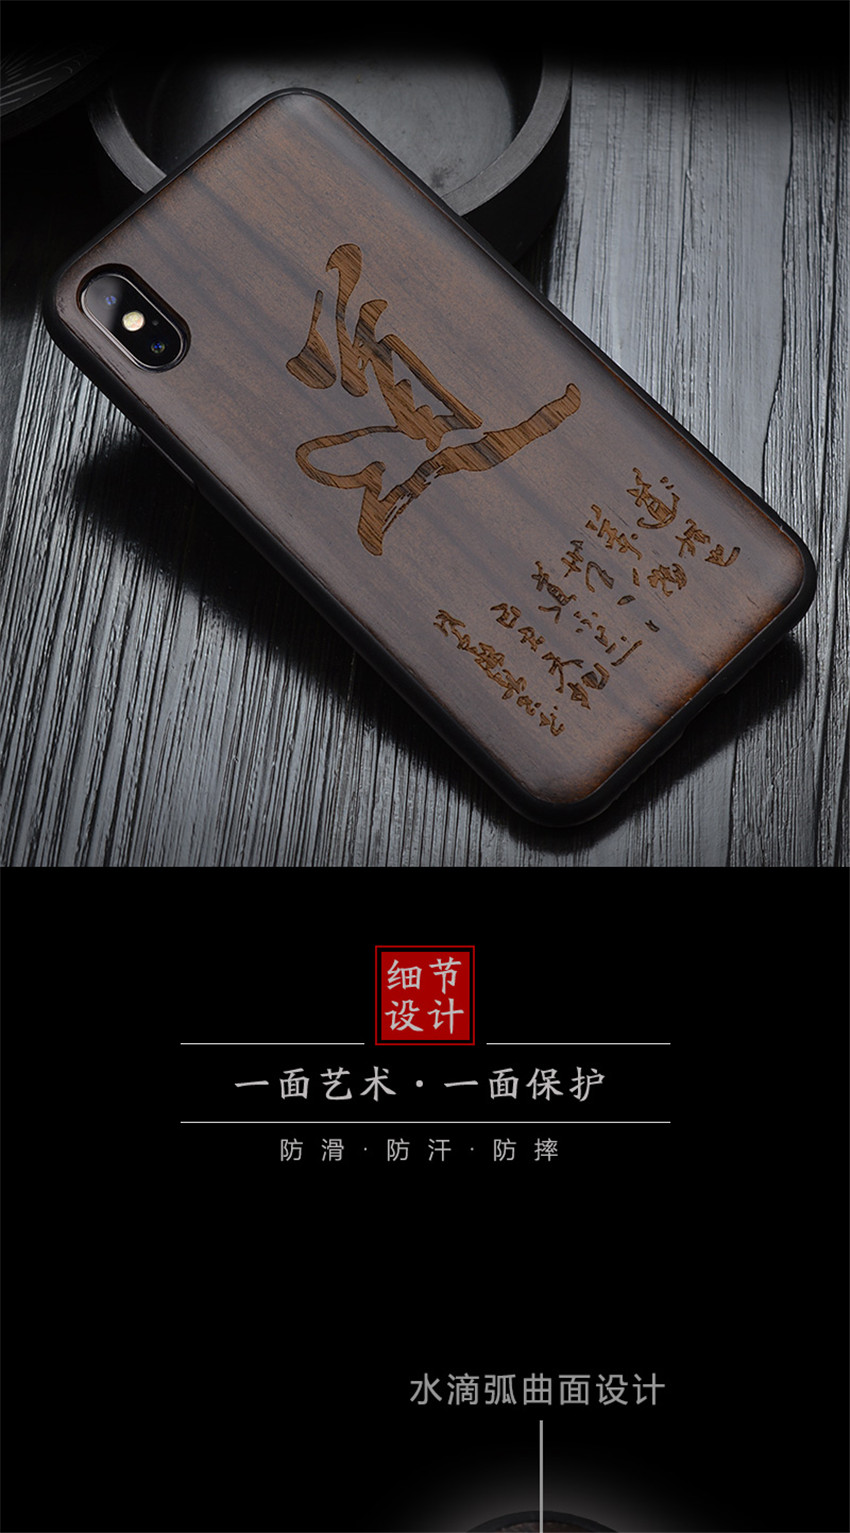 2018 New For iPhone X Case Black Ebony Wood Cover For iPhone X iPhone 10 Carved TPU Bumper Wooden Protective Case 5 (3)